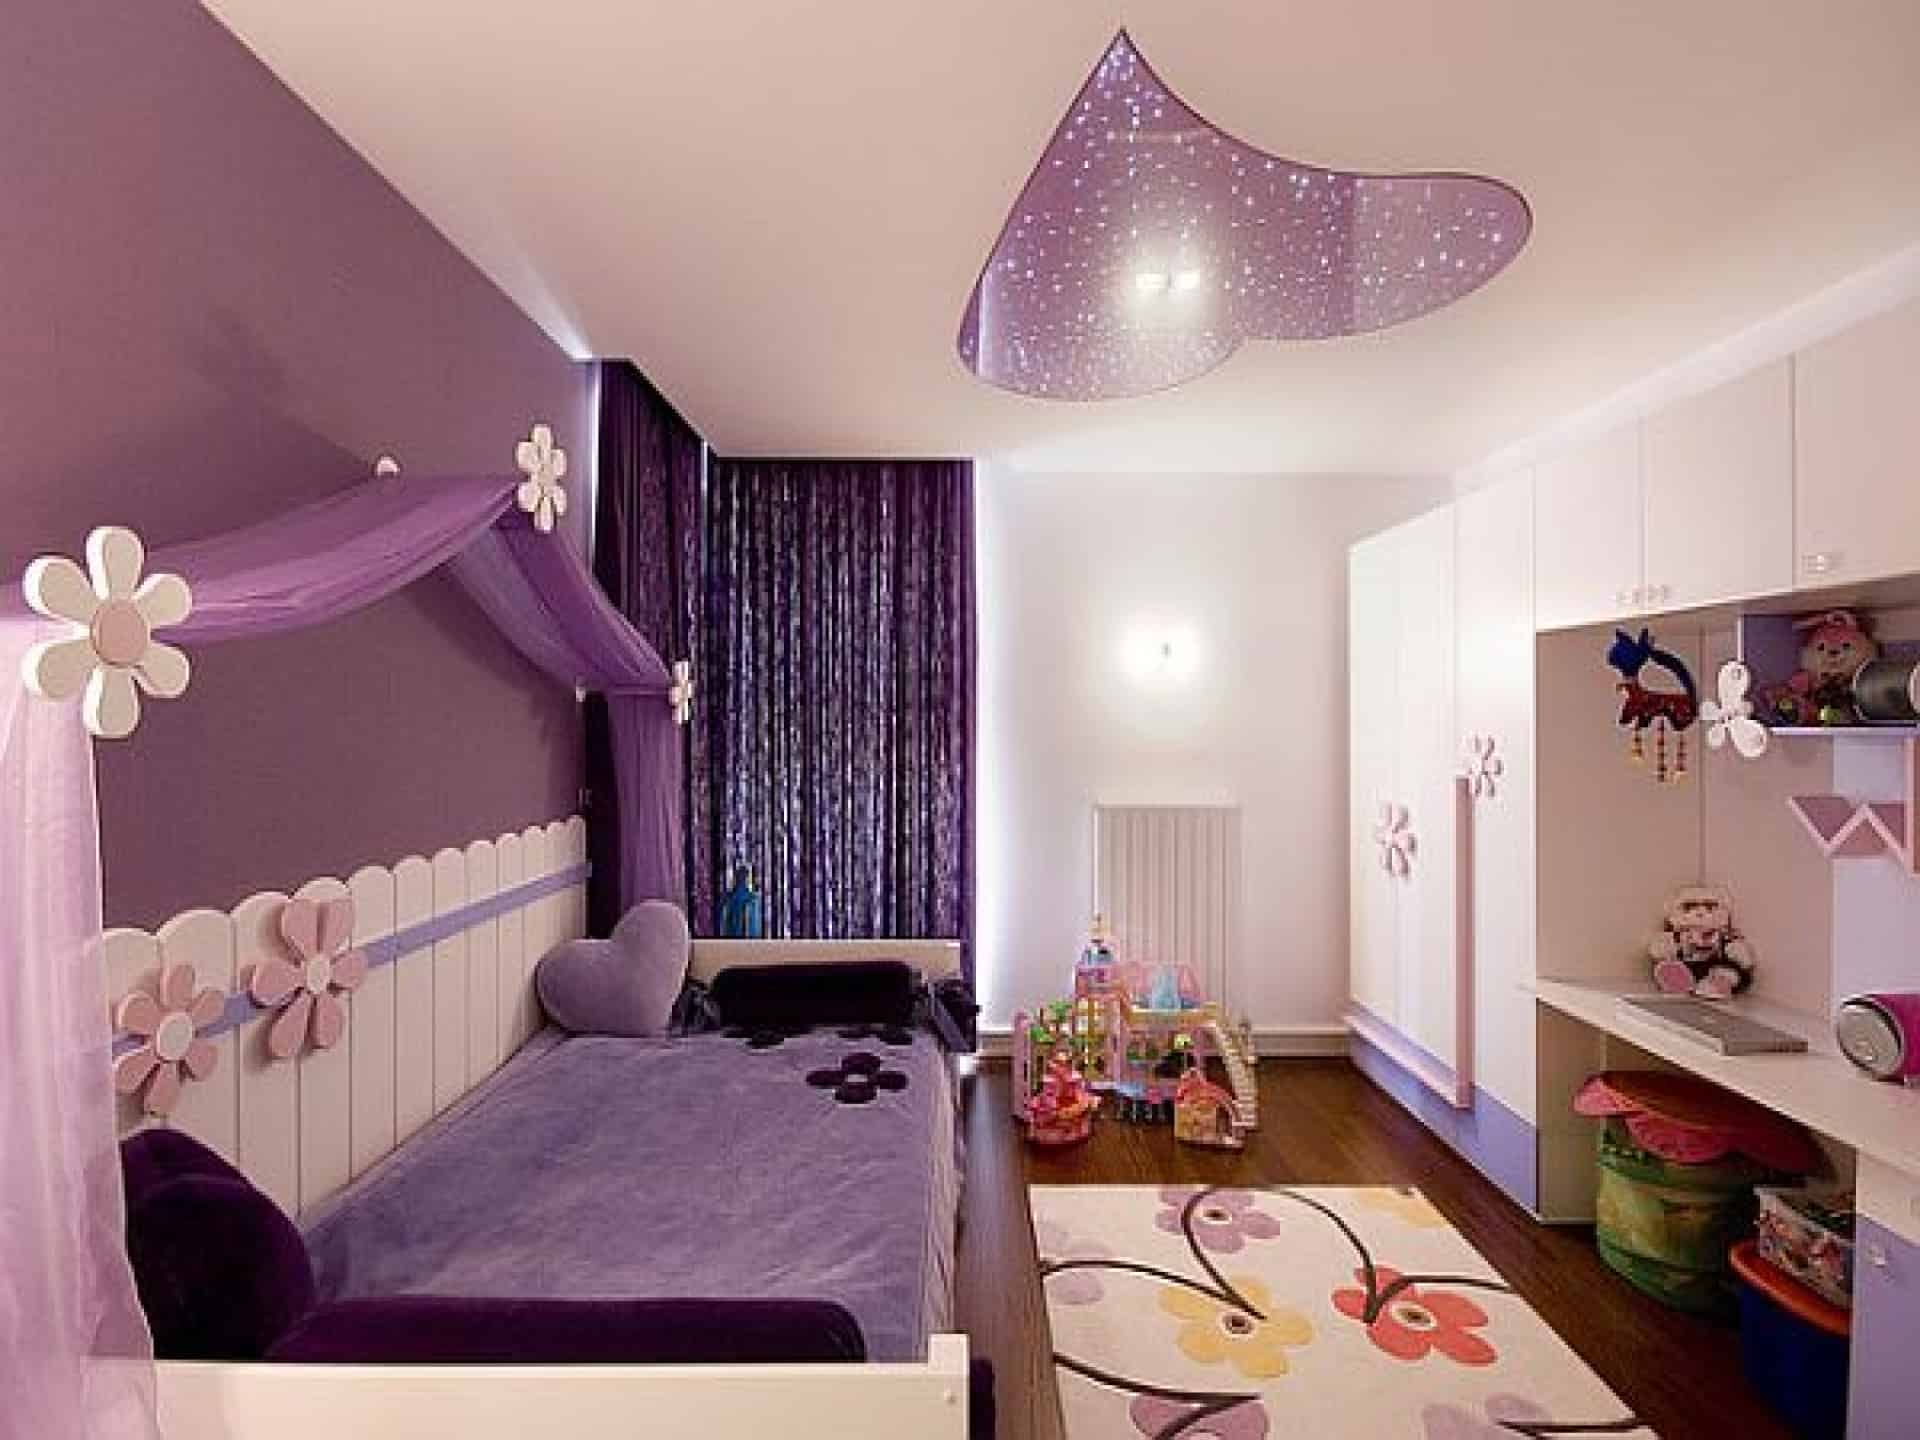 Home decor trends 2017 purple teen room for Bedroom mural designs